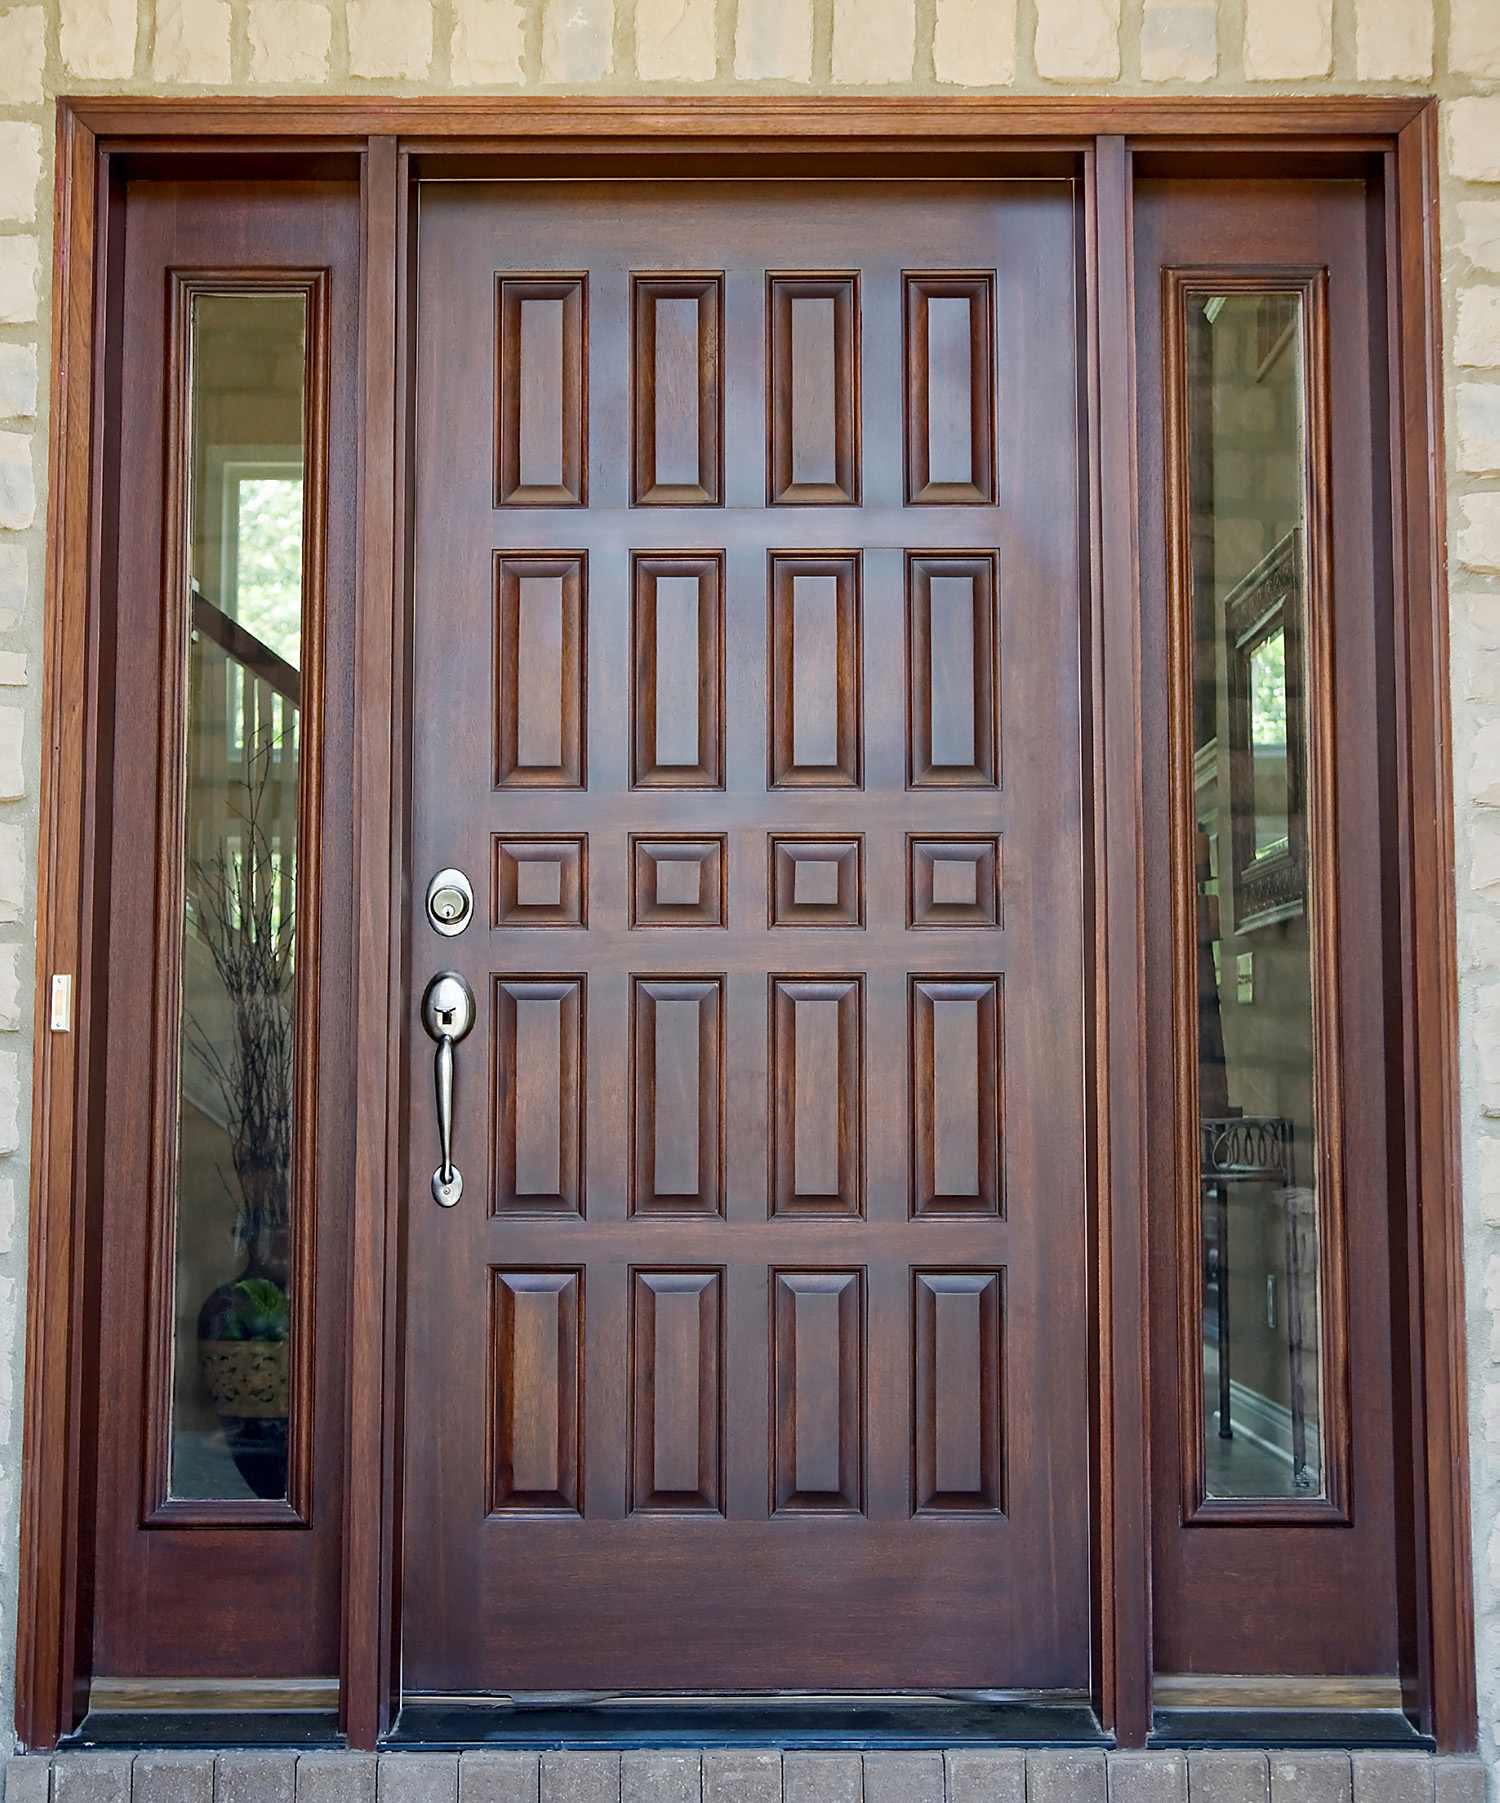 Wood grain door_beckway door.jpg